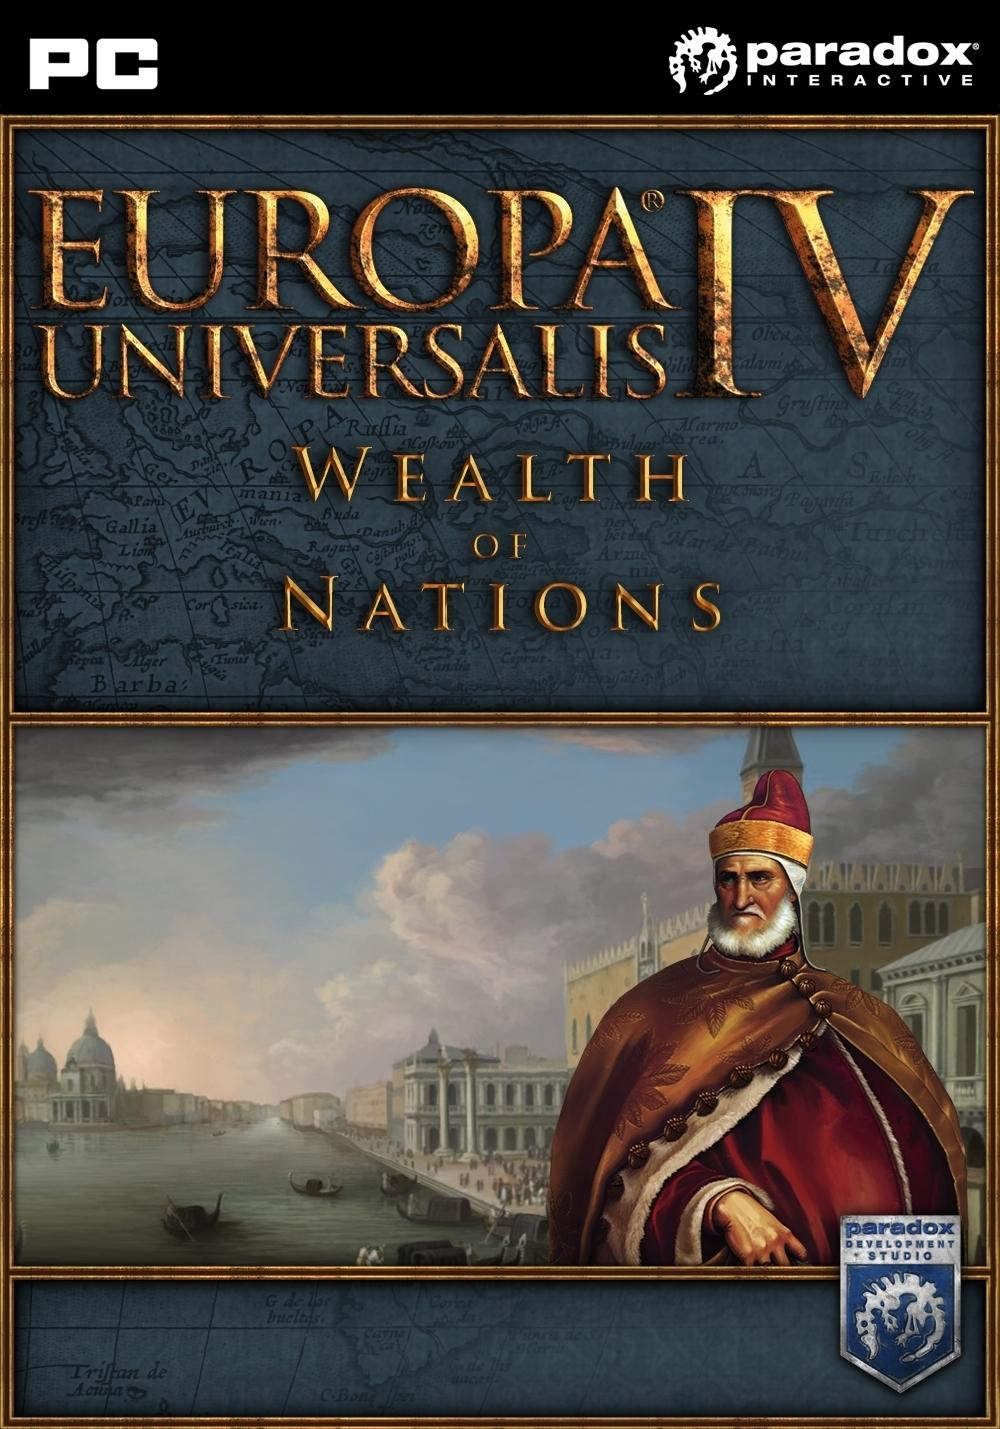 Europa Universalis IV: Wealth of Nations - Expansion (NEW) | ROW (4c42700c-df23-4555-825c-863ed2a0bd5e)